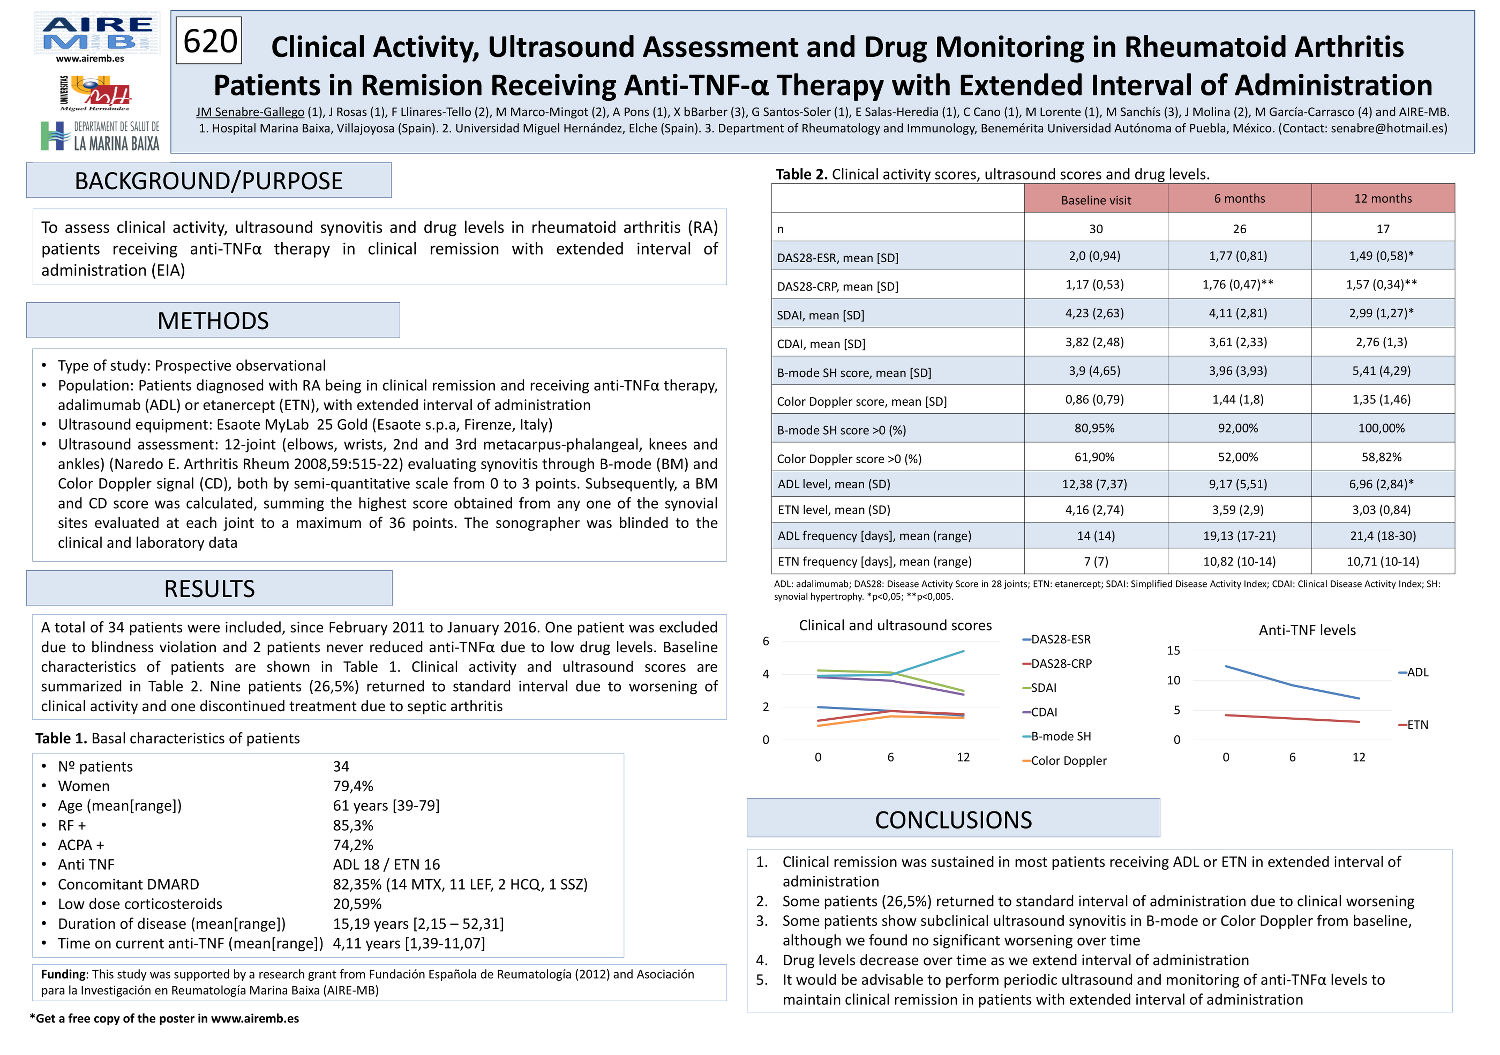 Clinical Activity, Ultrasound Assessment and Drug Monitoring in Rheumatoid Arthritis Patients in Remision Receiving Anti-TNF-α Therapy with Extended Interval of Administration